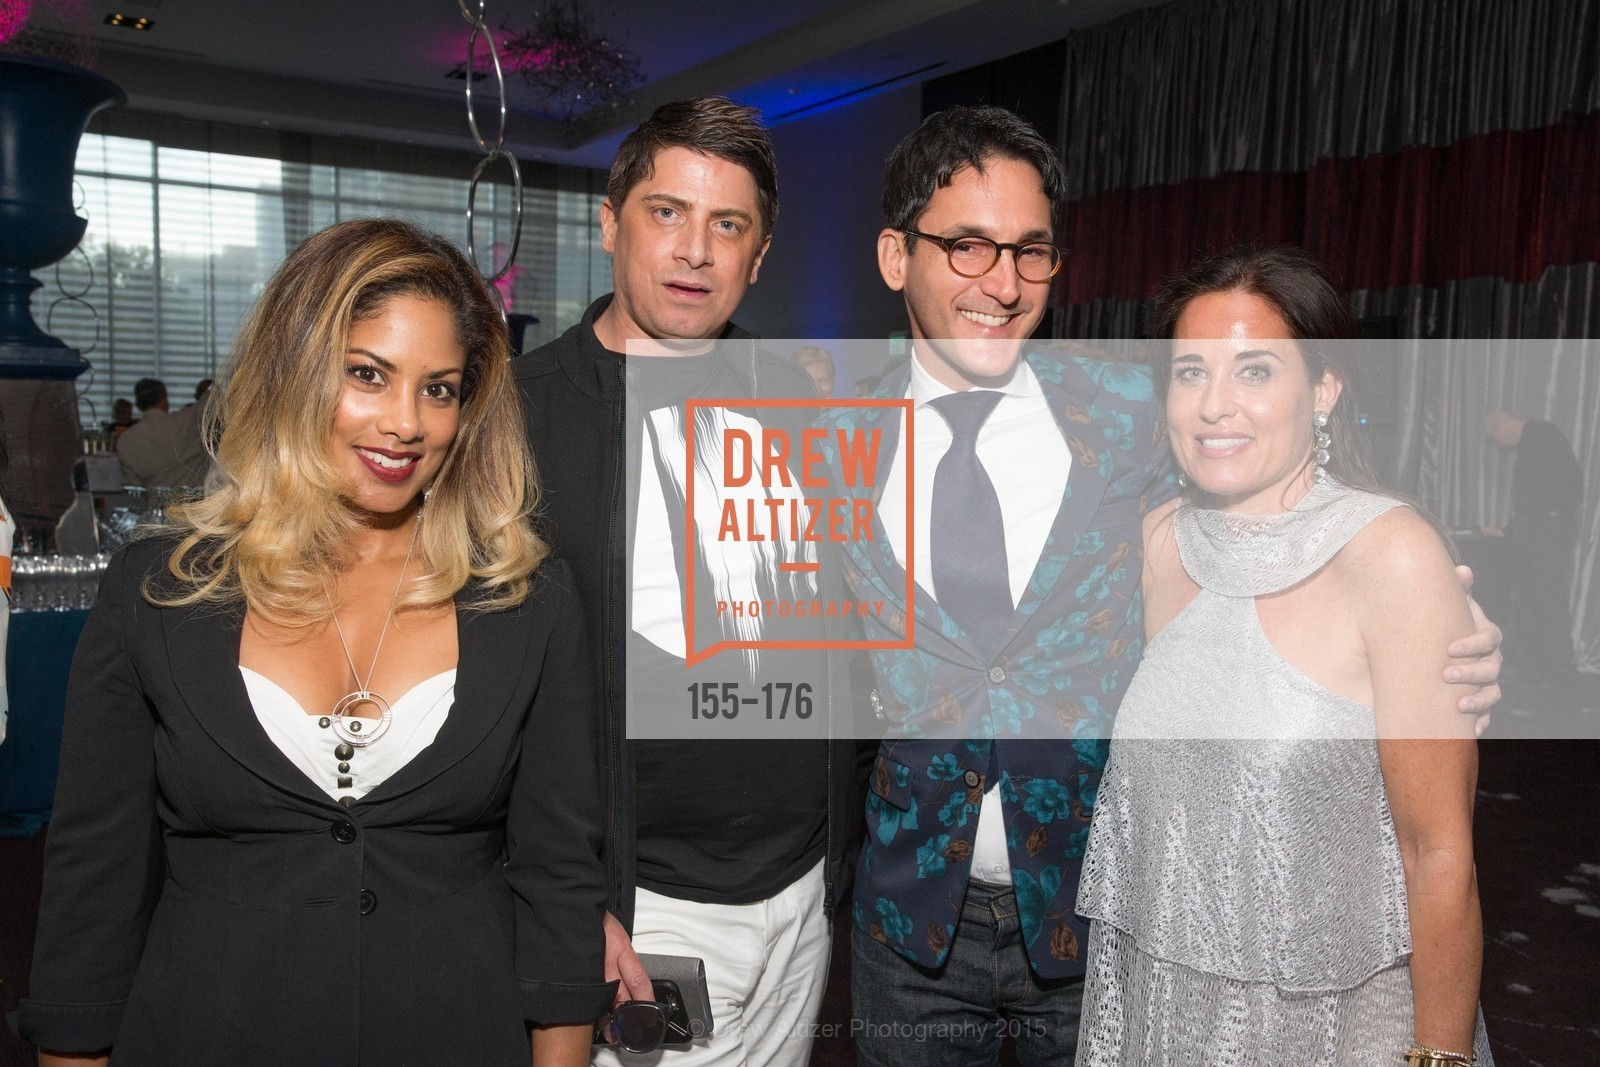 Aubrey Brewster, James Krohn, Natalia Urrutia, VIP Pride Celebration 2015, St. Regis, June 18th, 2015,Drew Altizer, Drew Altizer Photography, full-service agency, private events, San Francisco photographer, photographer california